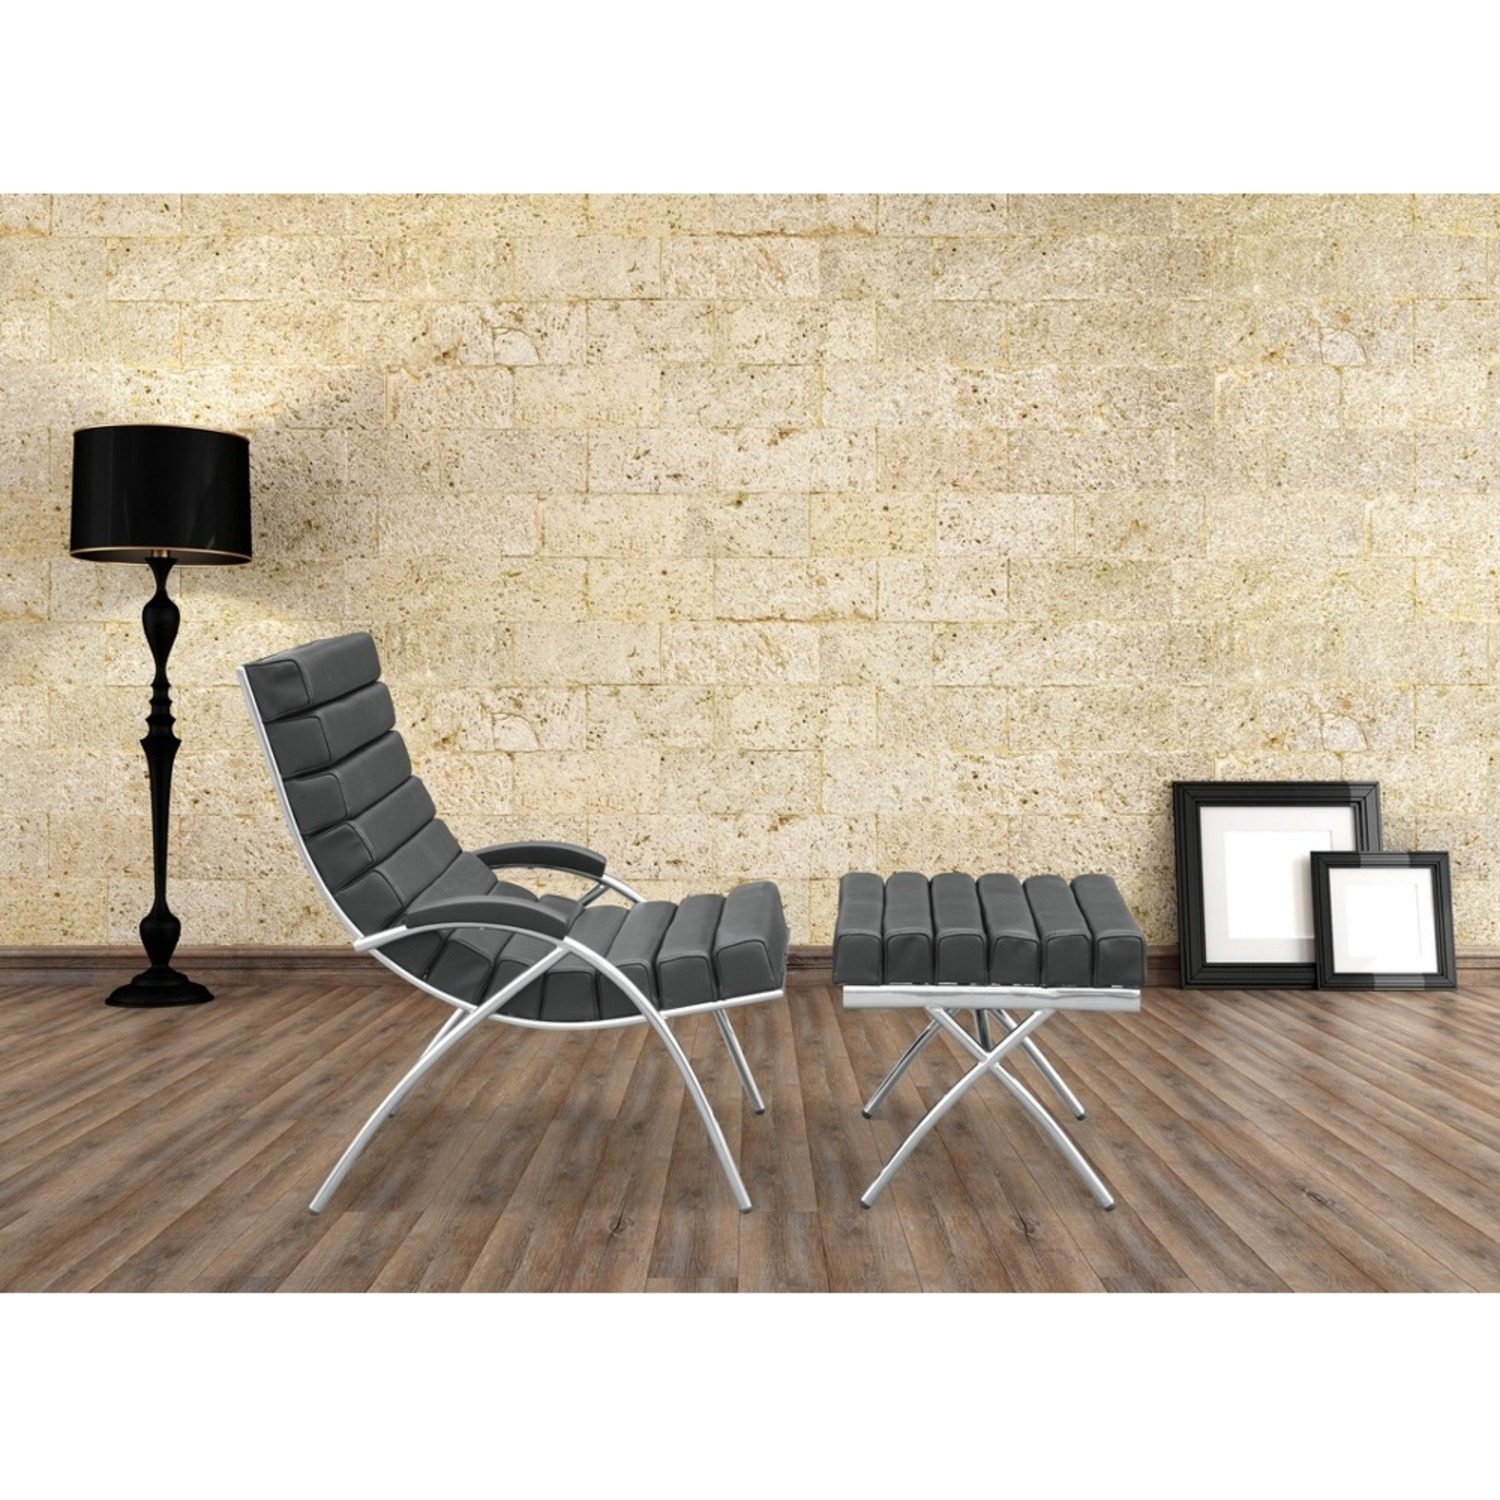 Chair & Ottoman In Black Leather & Stainless Steel - image-6